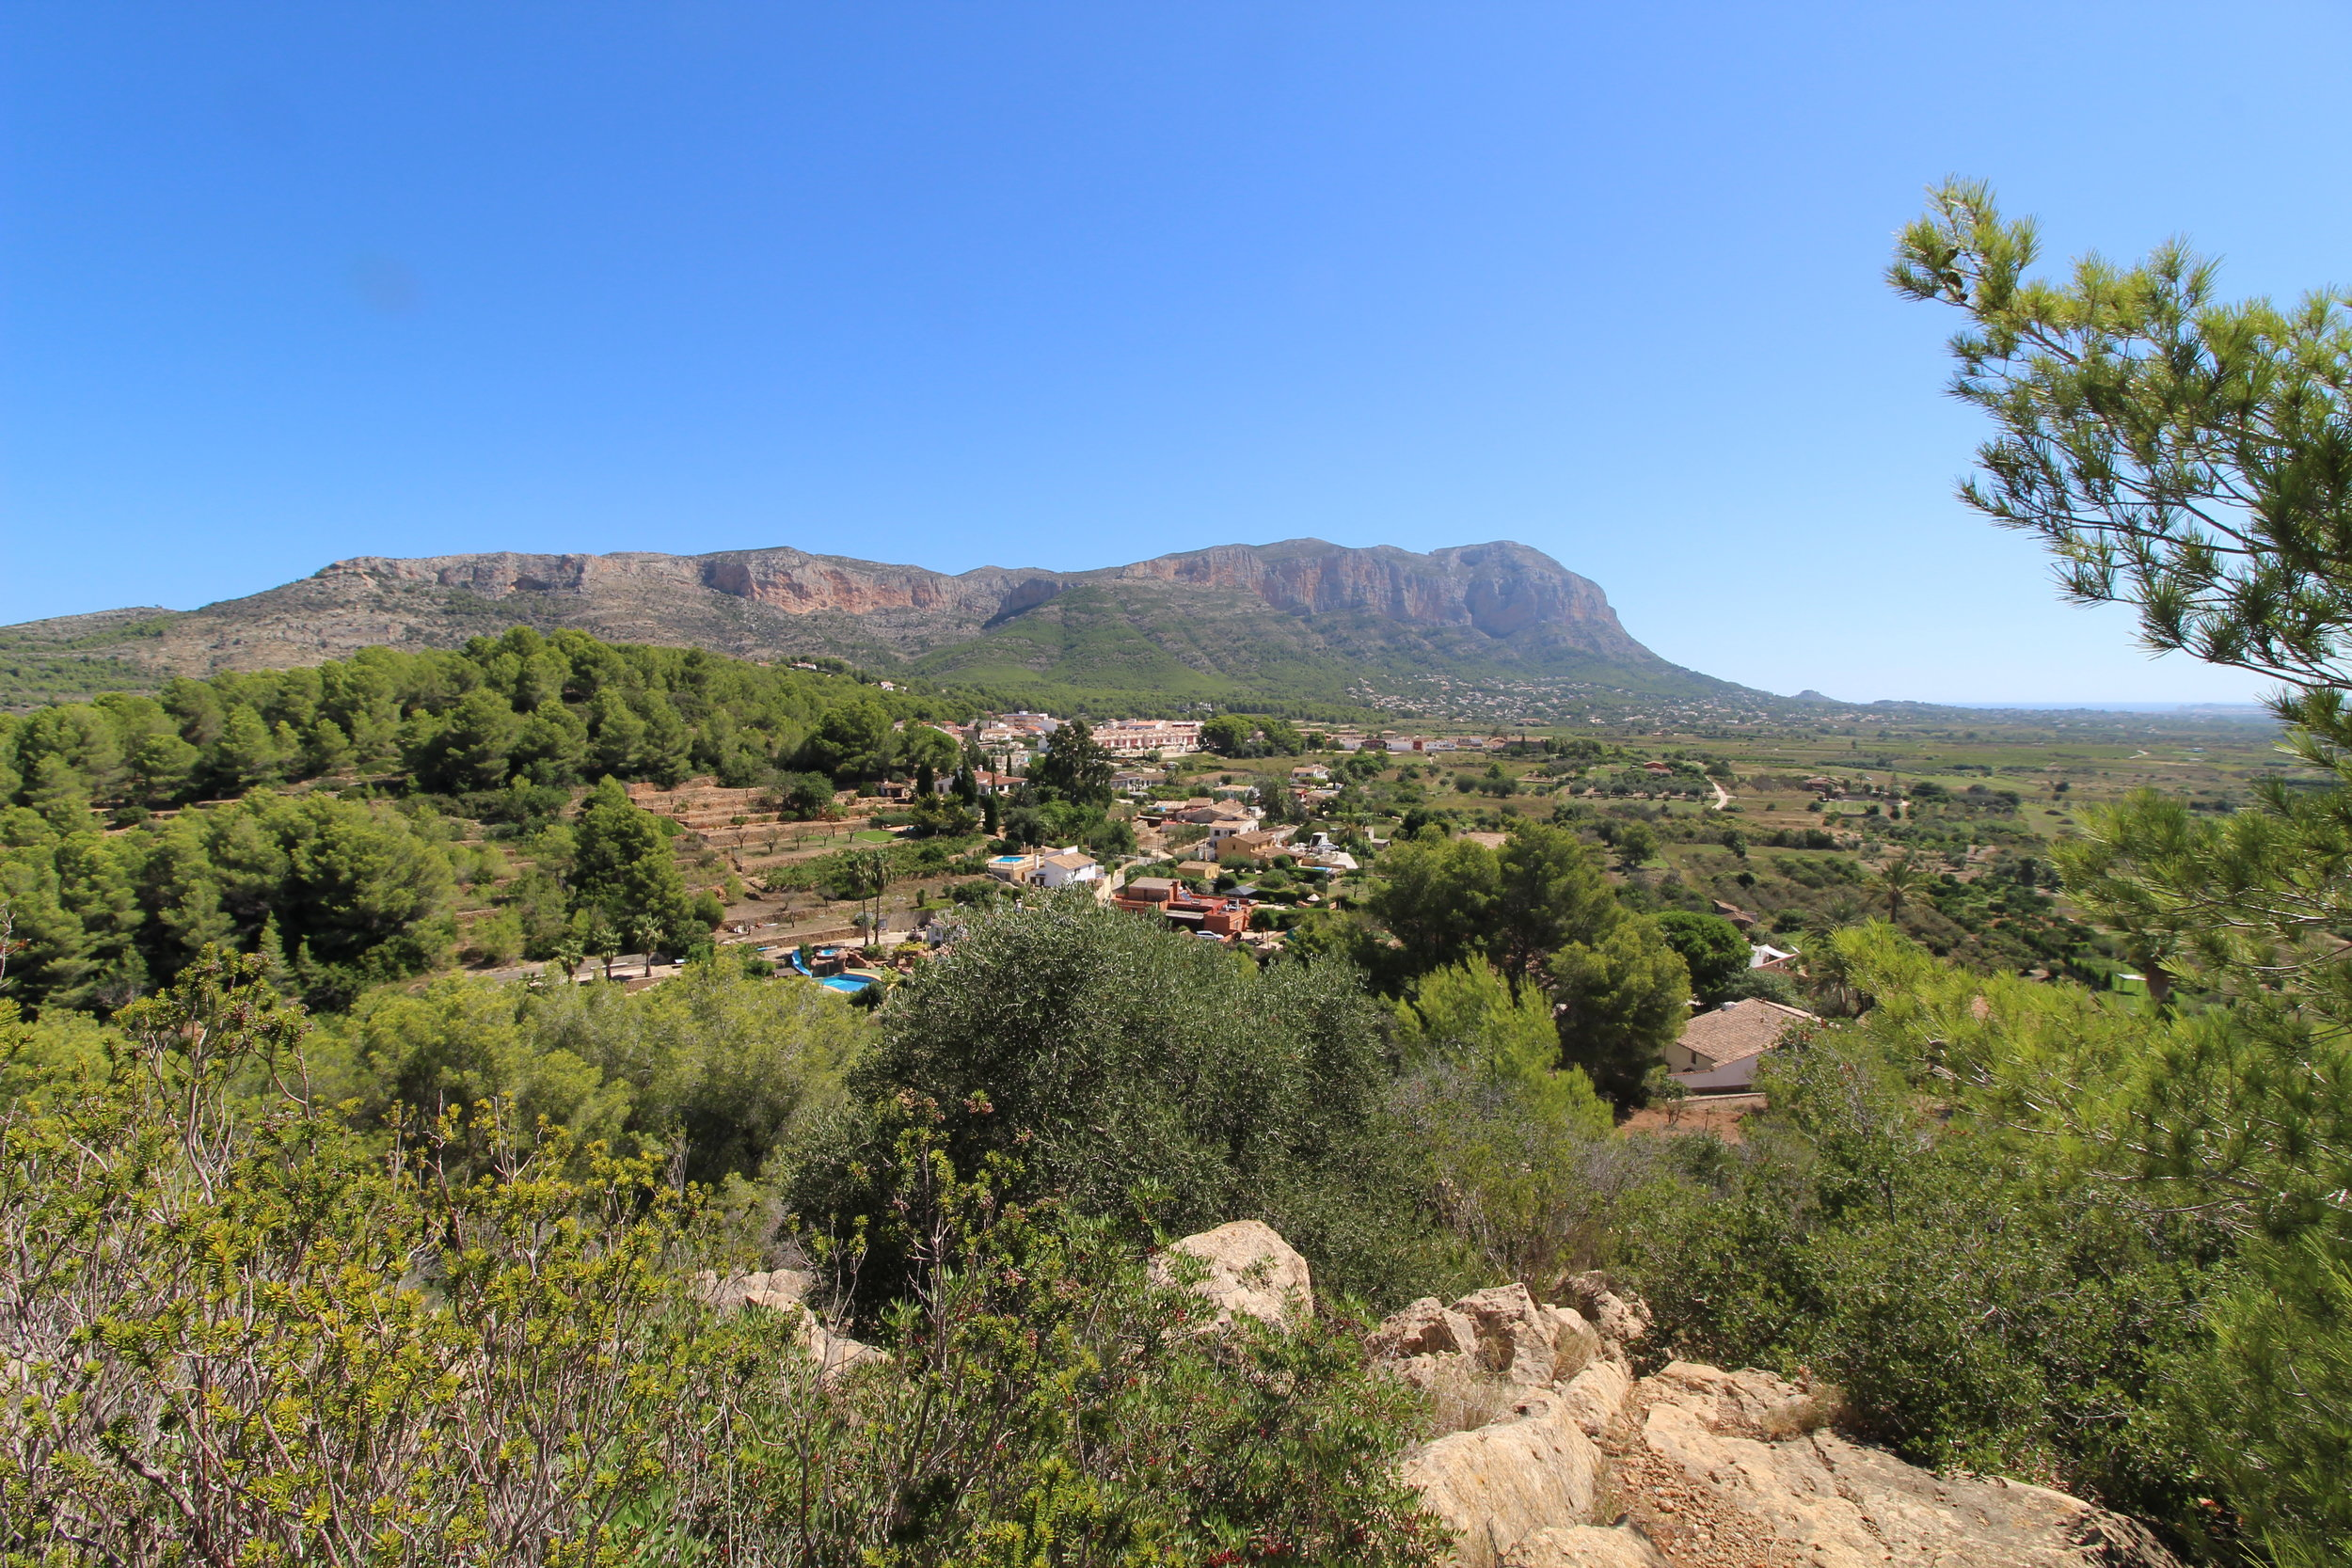 Jesús PobreProperties - Our hometown, the beautiful, Friendly and bohemian village of jesús pobrelocated in the foothills of the montgó, between jávea, dénia, gata de gorgos and ondara; living in this hamlet is paradise... let us help you find your home here